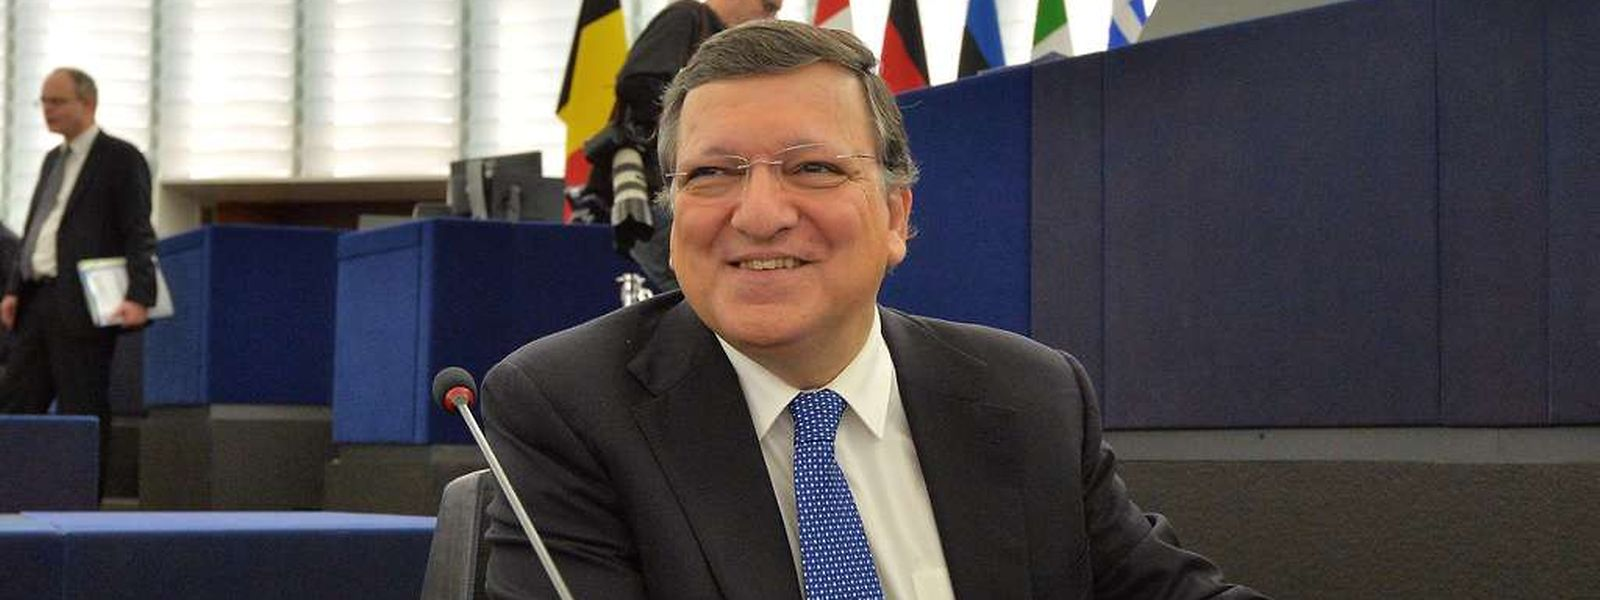 Outgoing European Commission President Jose Manuel Barroso attends the review of the Barroso II Commission, in the European Parliament Strasbourg, eastern France on October 21, 2014. Barroso will be replaced at the head of the Commission by Luxemburg's Jean-Claude Juncker.  AFP PHOTO / PATRICK HERTZOG